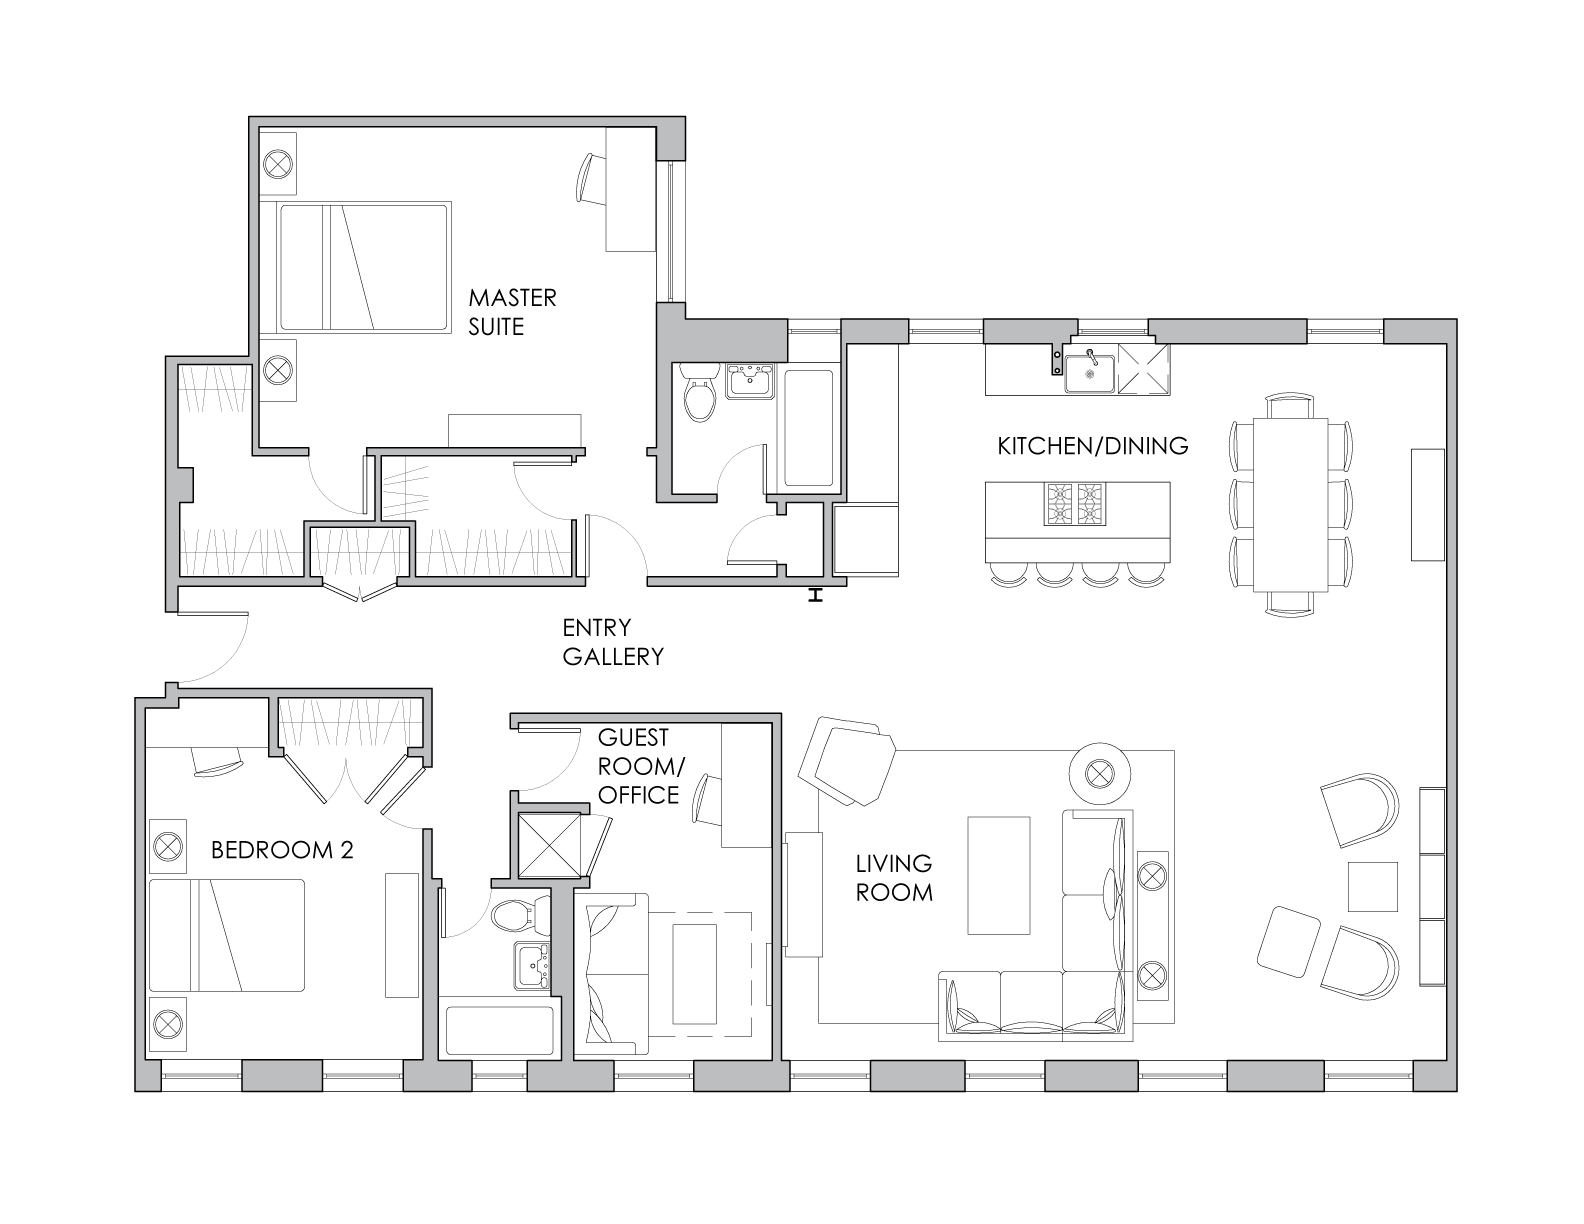 Plan - After